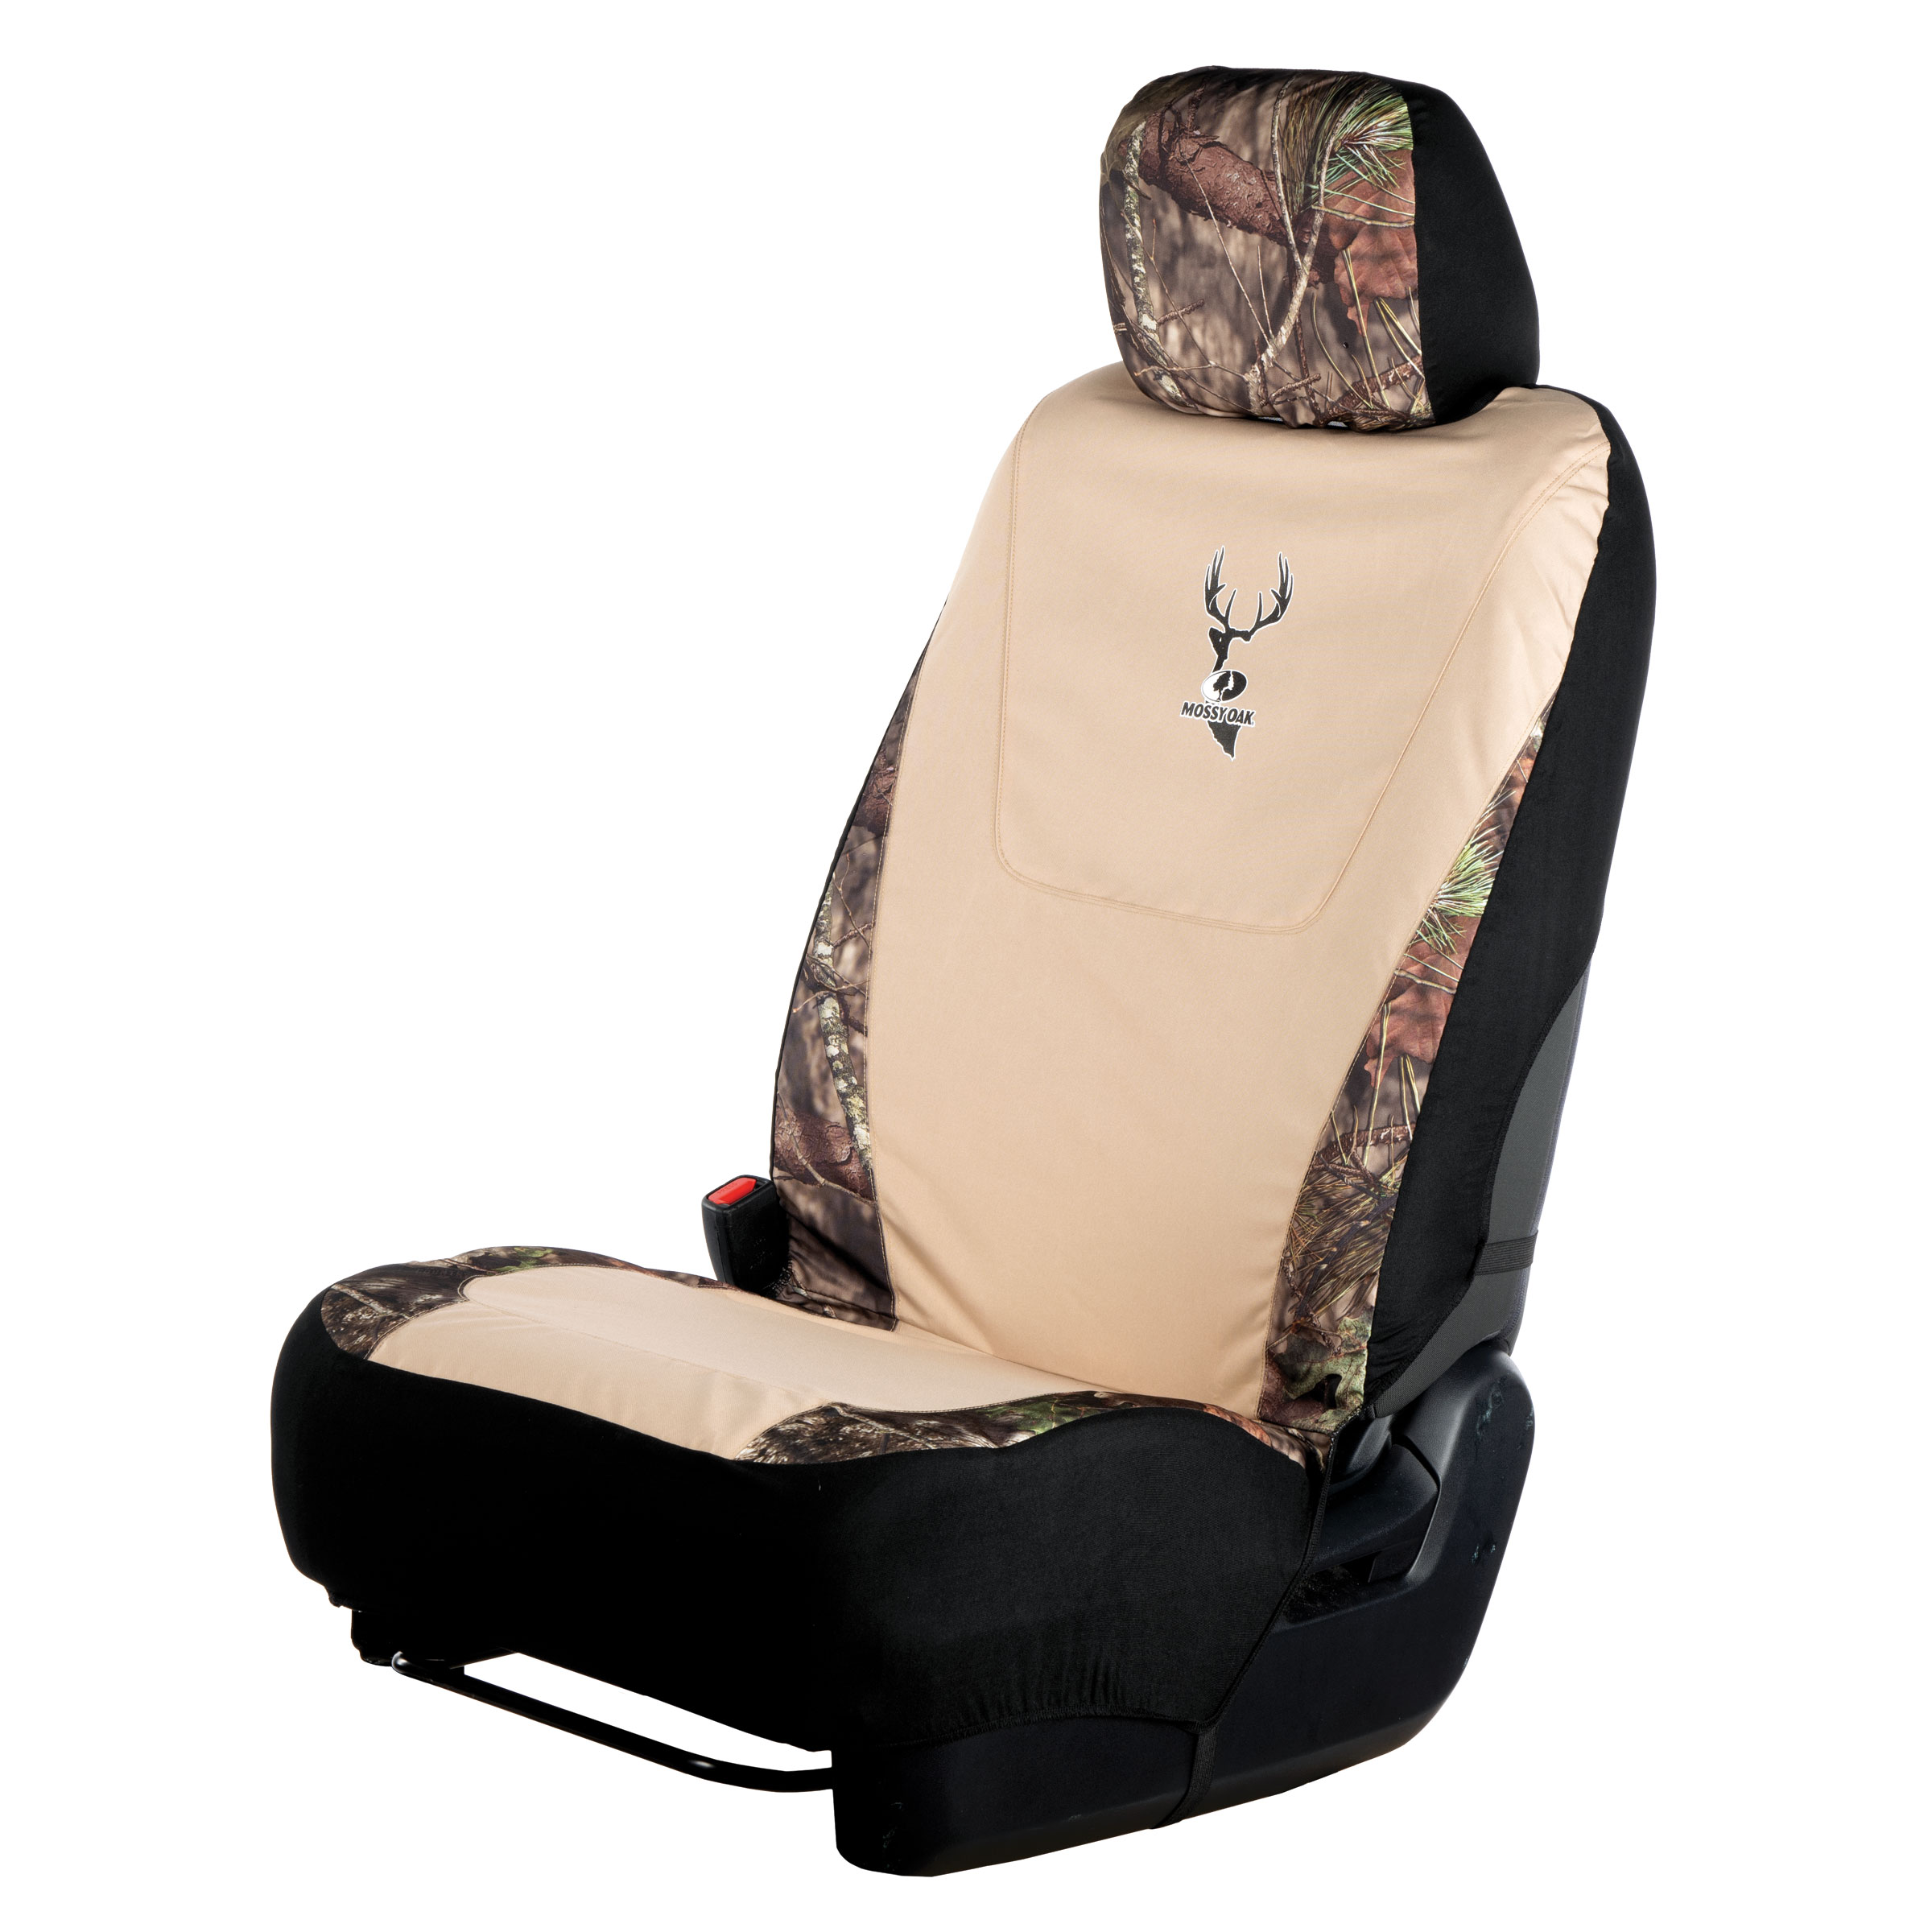 Enjoyable Mossy Oak Low Back Seat Cover Walmart Inventory Checker Unemploymentrelief Wooden Chair Designs For Living Room Unemploymentrelieforg